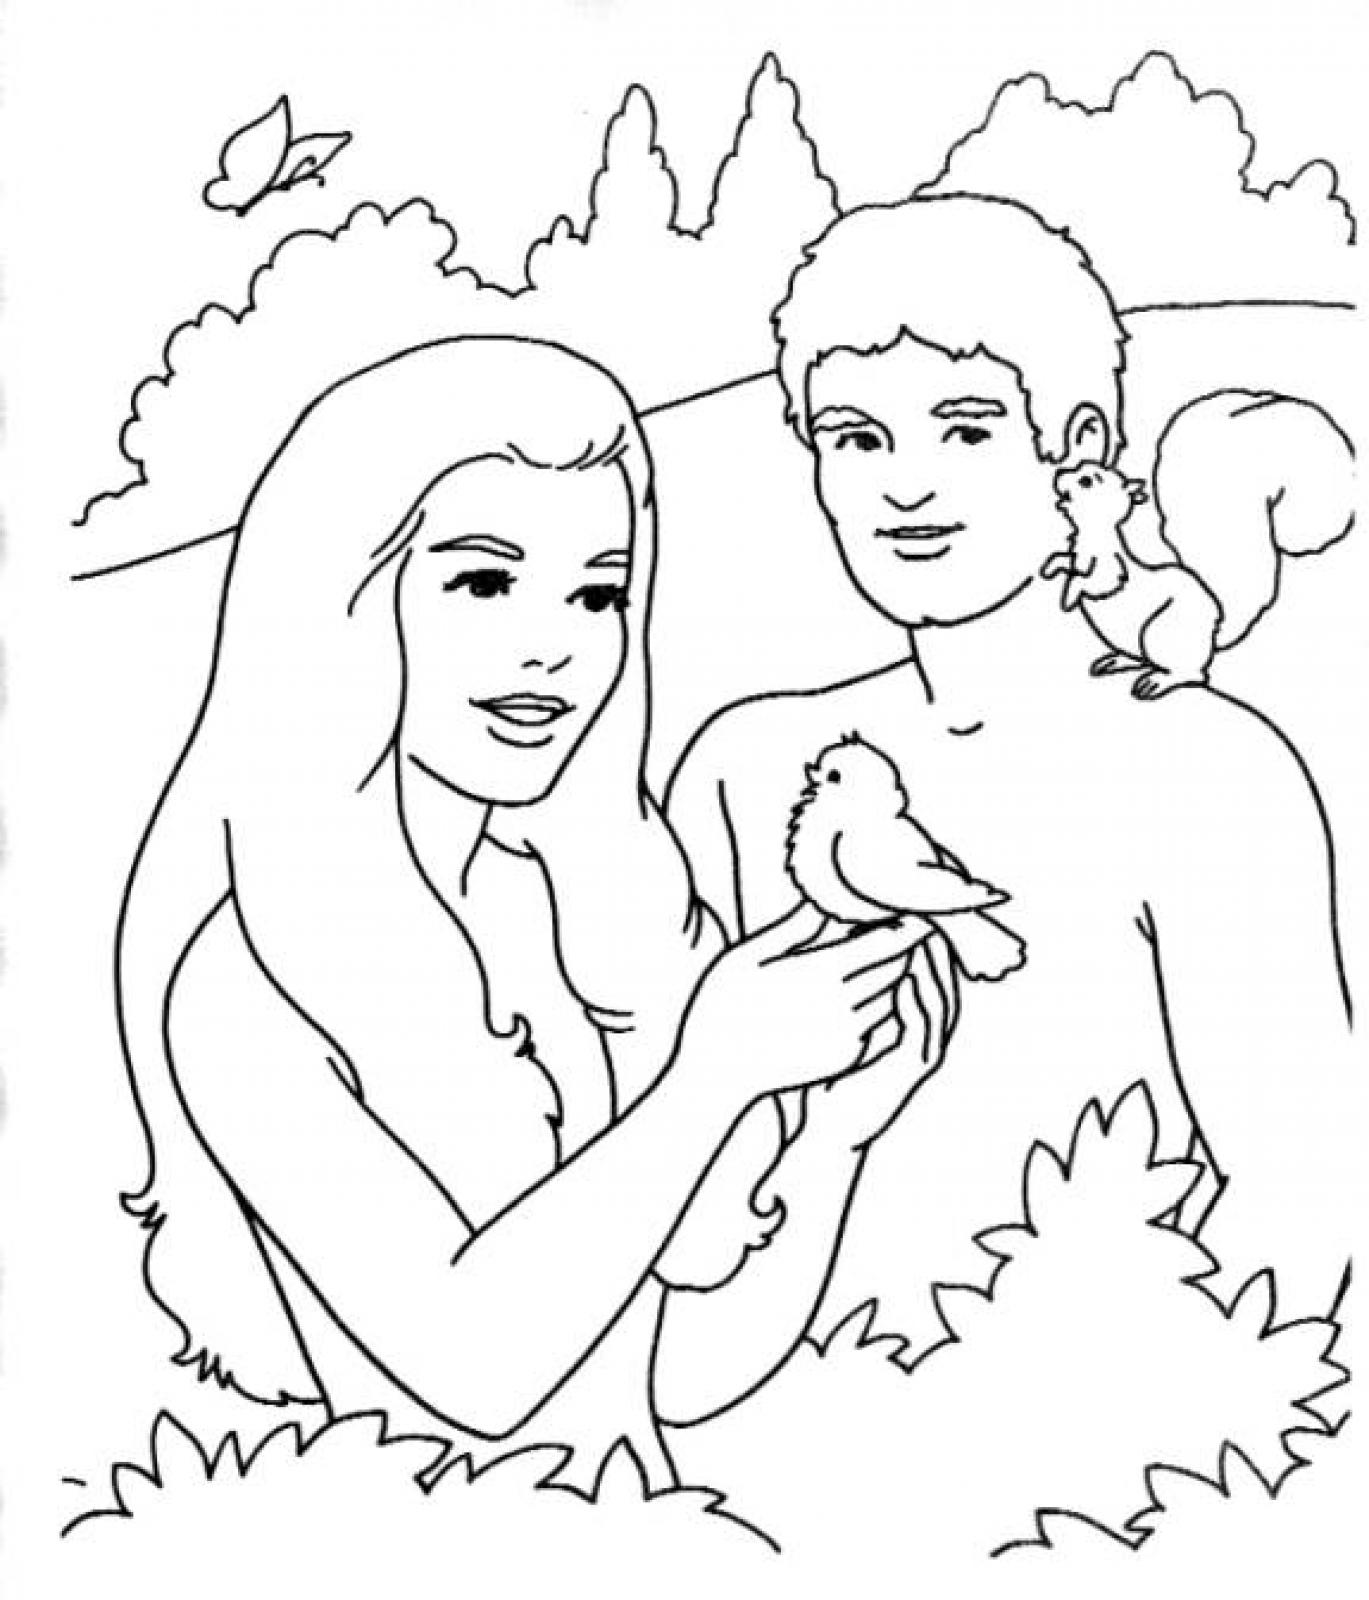 adam and eve coloring sheet bible coloring pages momjunction eve coloring and sheet adam